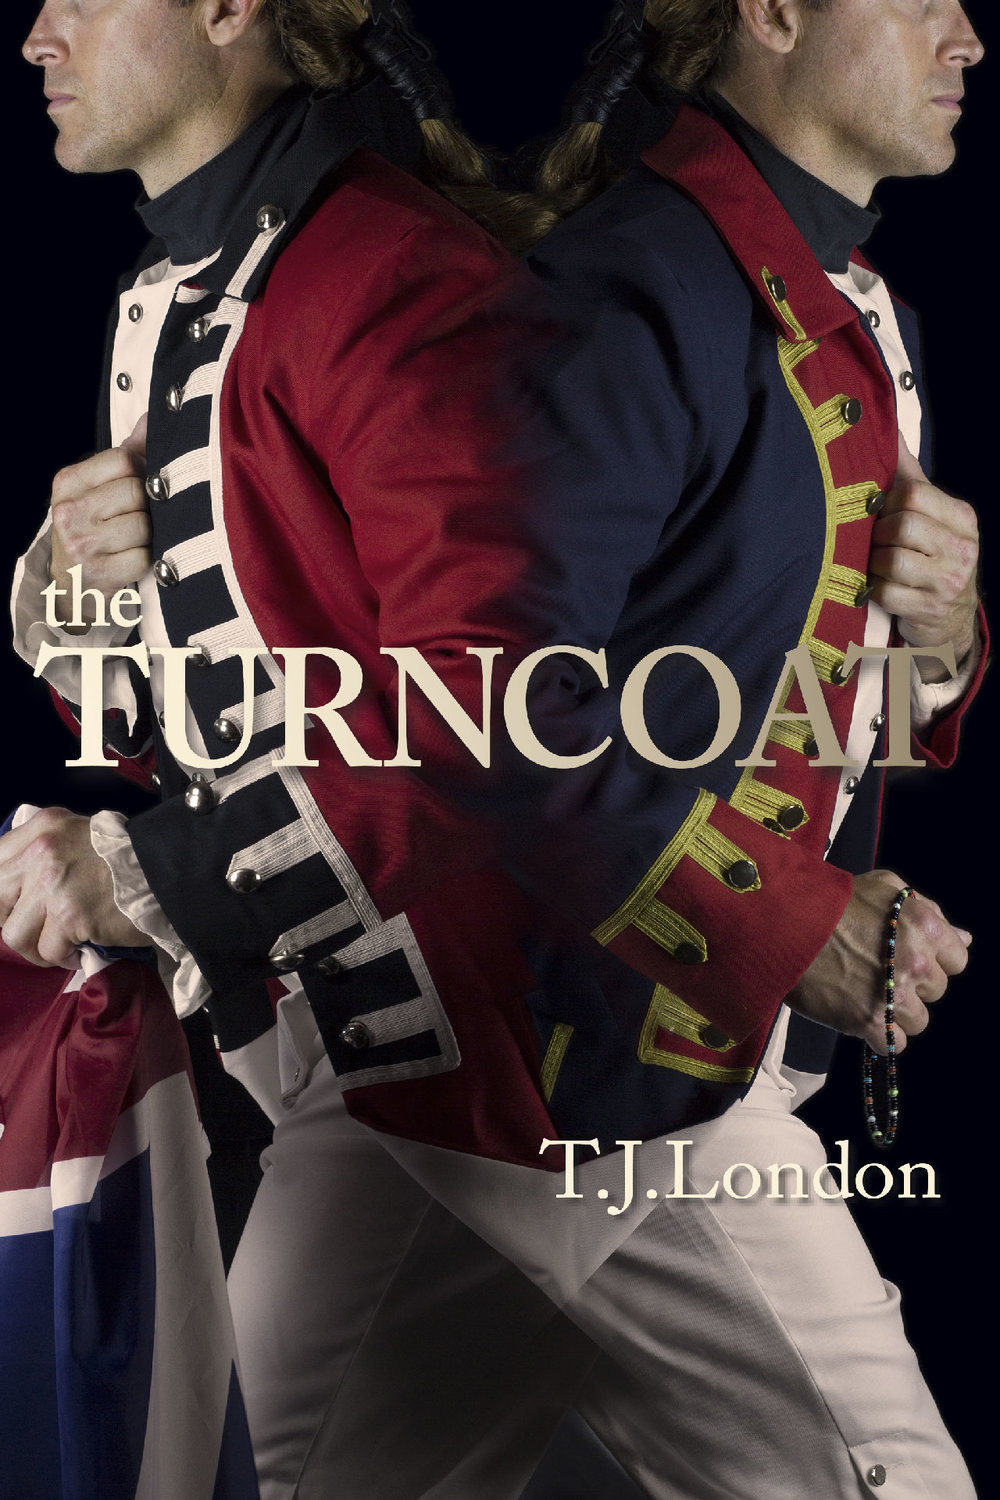 Rebel or Redcoat? - The Turncoat Book #3 in The Rebels and Redcoats Saga. On Sale May 24th, 2019 on Amazon, Barnes and Nobel, IBOOKS, KoboSpy. Redcoat. Traitor.After Captain John Carlisle's dance with death, he's retreated to the serenity of the Oneida village with his beloved Dellis McKesson, trying to hide from the inevitable truth that war is coming. But when duty calls and John's expertise is needed to negotiate a treaty between the Six Nations of Iroquois and the Crown, he'll once again be faced with a decision: his King or his conscience.Many secrets have yet to be revealed, and a deal with the Devil made in desperation, threatens to ruin Dellis and John's hard-won love. As ghosts of the past resurface, and bitter family rivalry exposes betrayal from those closest to her, Dellis is dragged down a devastating path to the truth of her parents' murders.Now, the die is cast as war comes to the Mohawk River Valley in the Summer of 1777. St. Leger and his native allies siege Fort Stanwix. The British are planning a secret attack that will force the Rebels and the Oneida to face off against the Crown and their loyal allies, further dividing John's loyalties, leaving him on the precipice of a decision: Rebel or Redcoat?